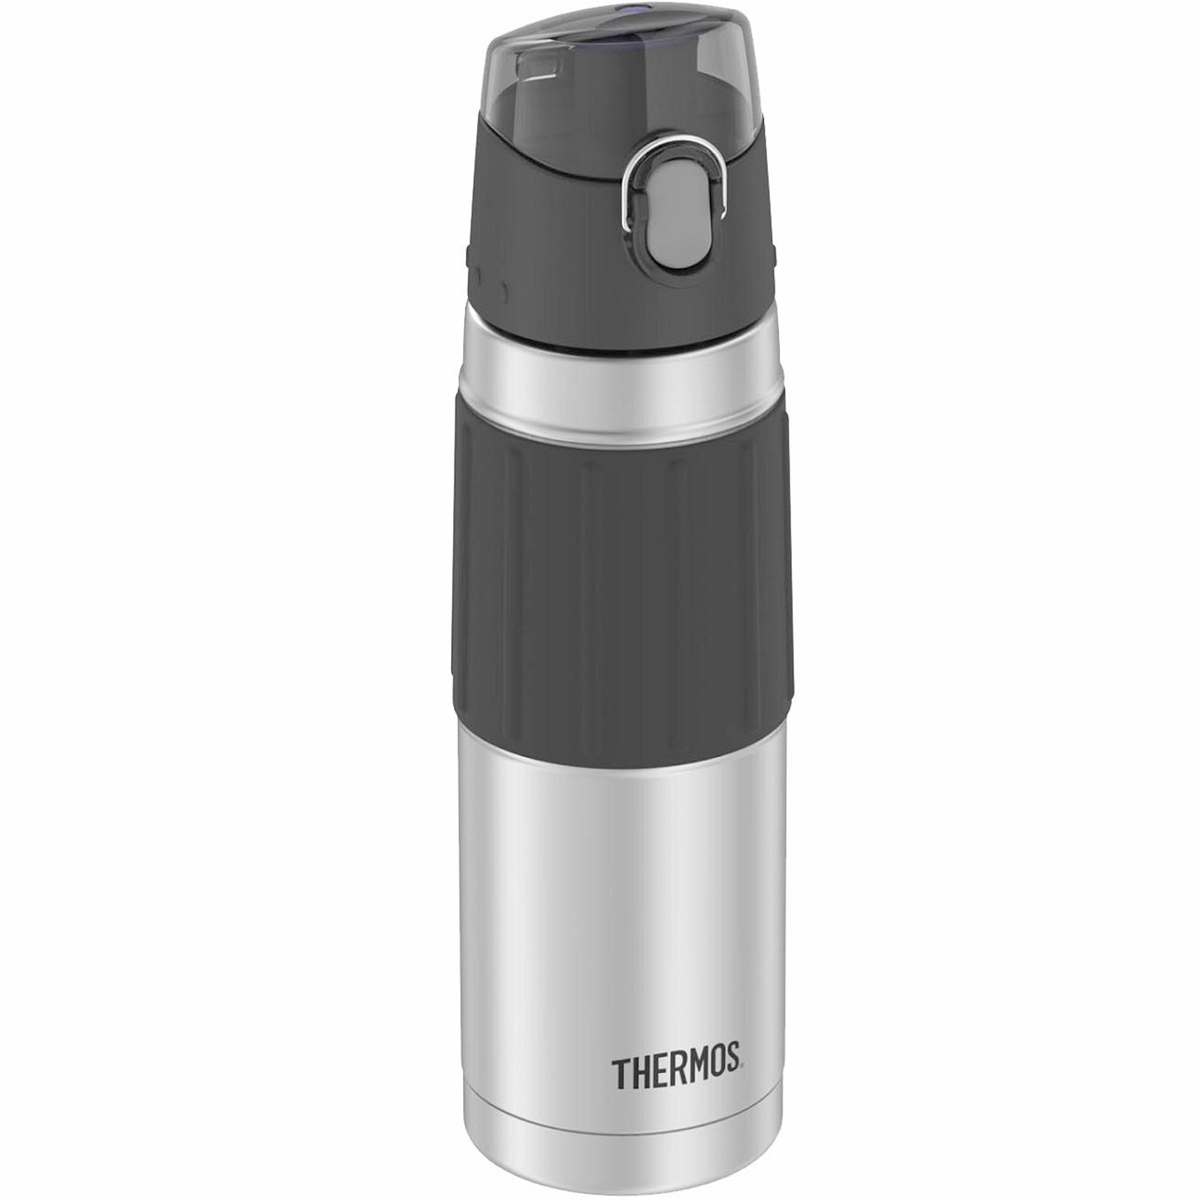 Thermos-18-oz-Vacuum-Insulated-Stainless-Steel-Hydration-Water-Bottle thumbnail 5